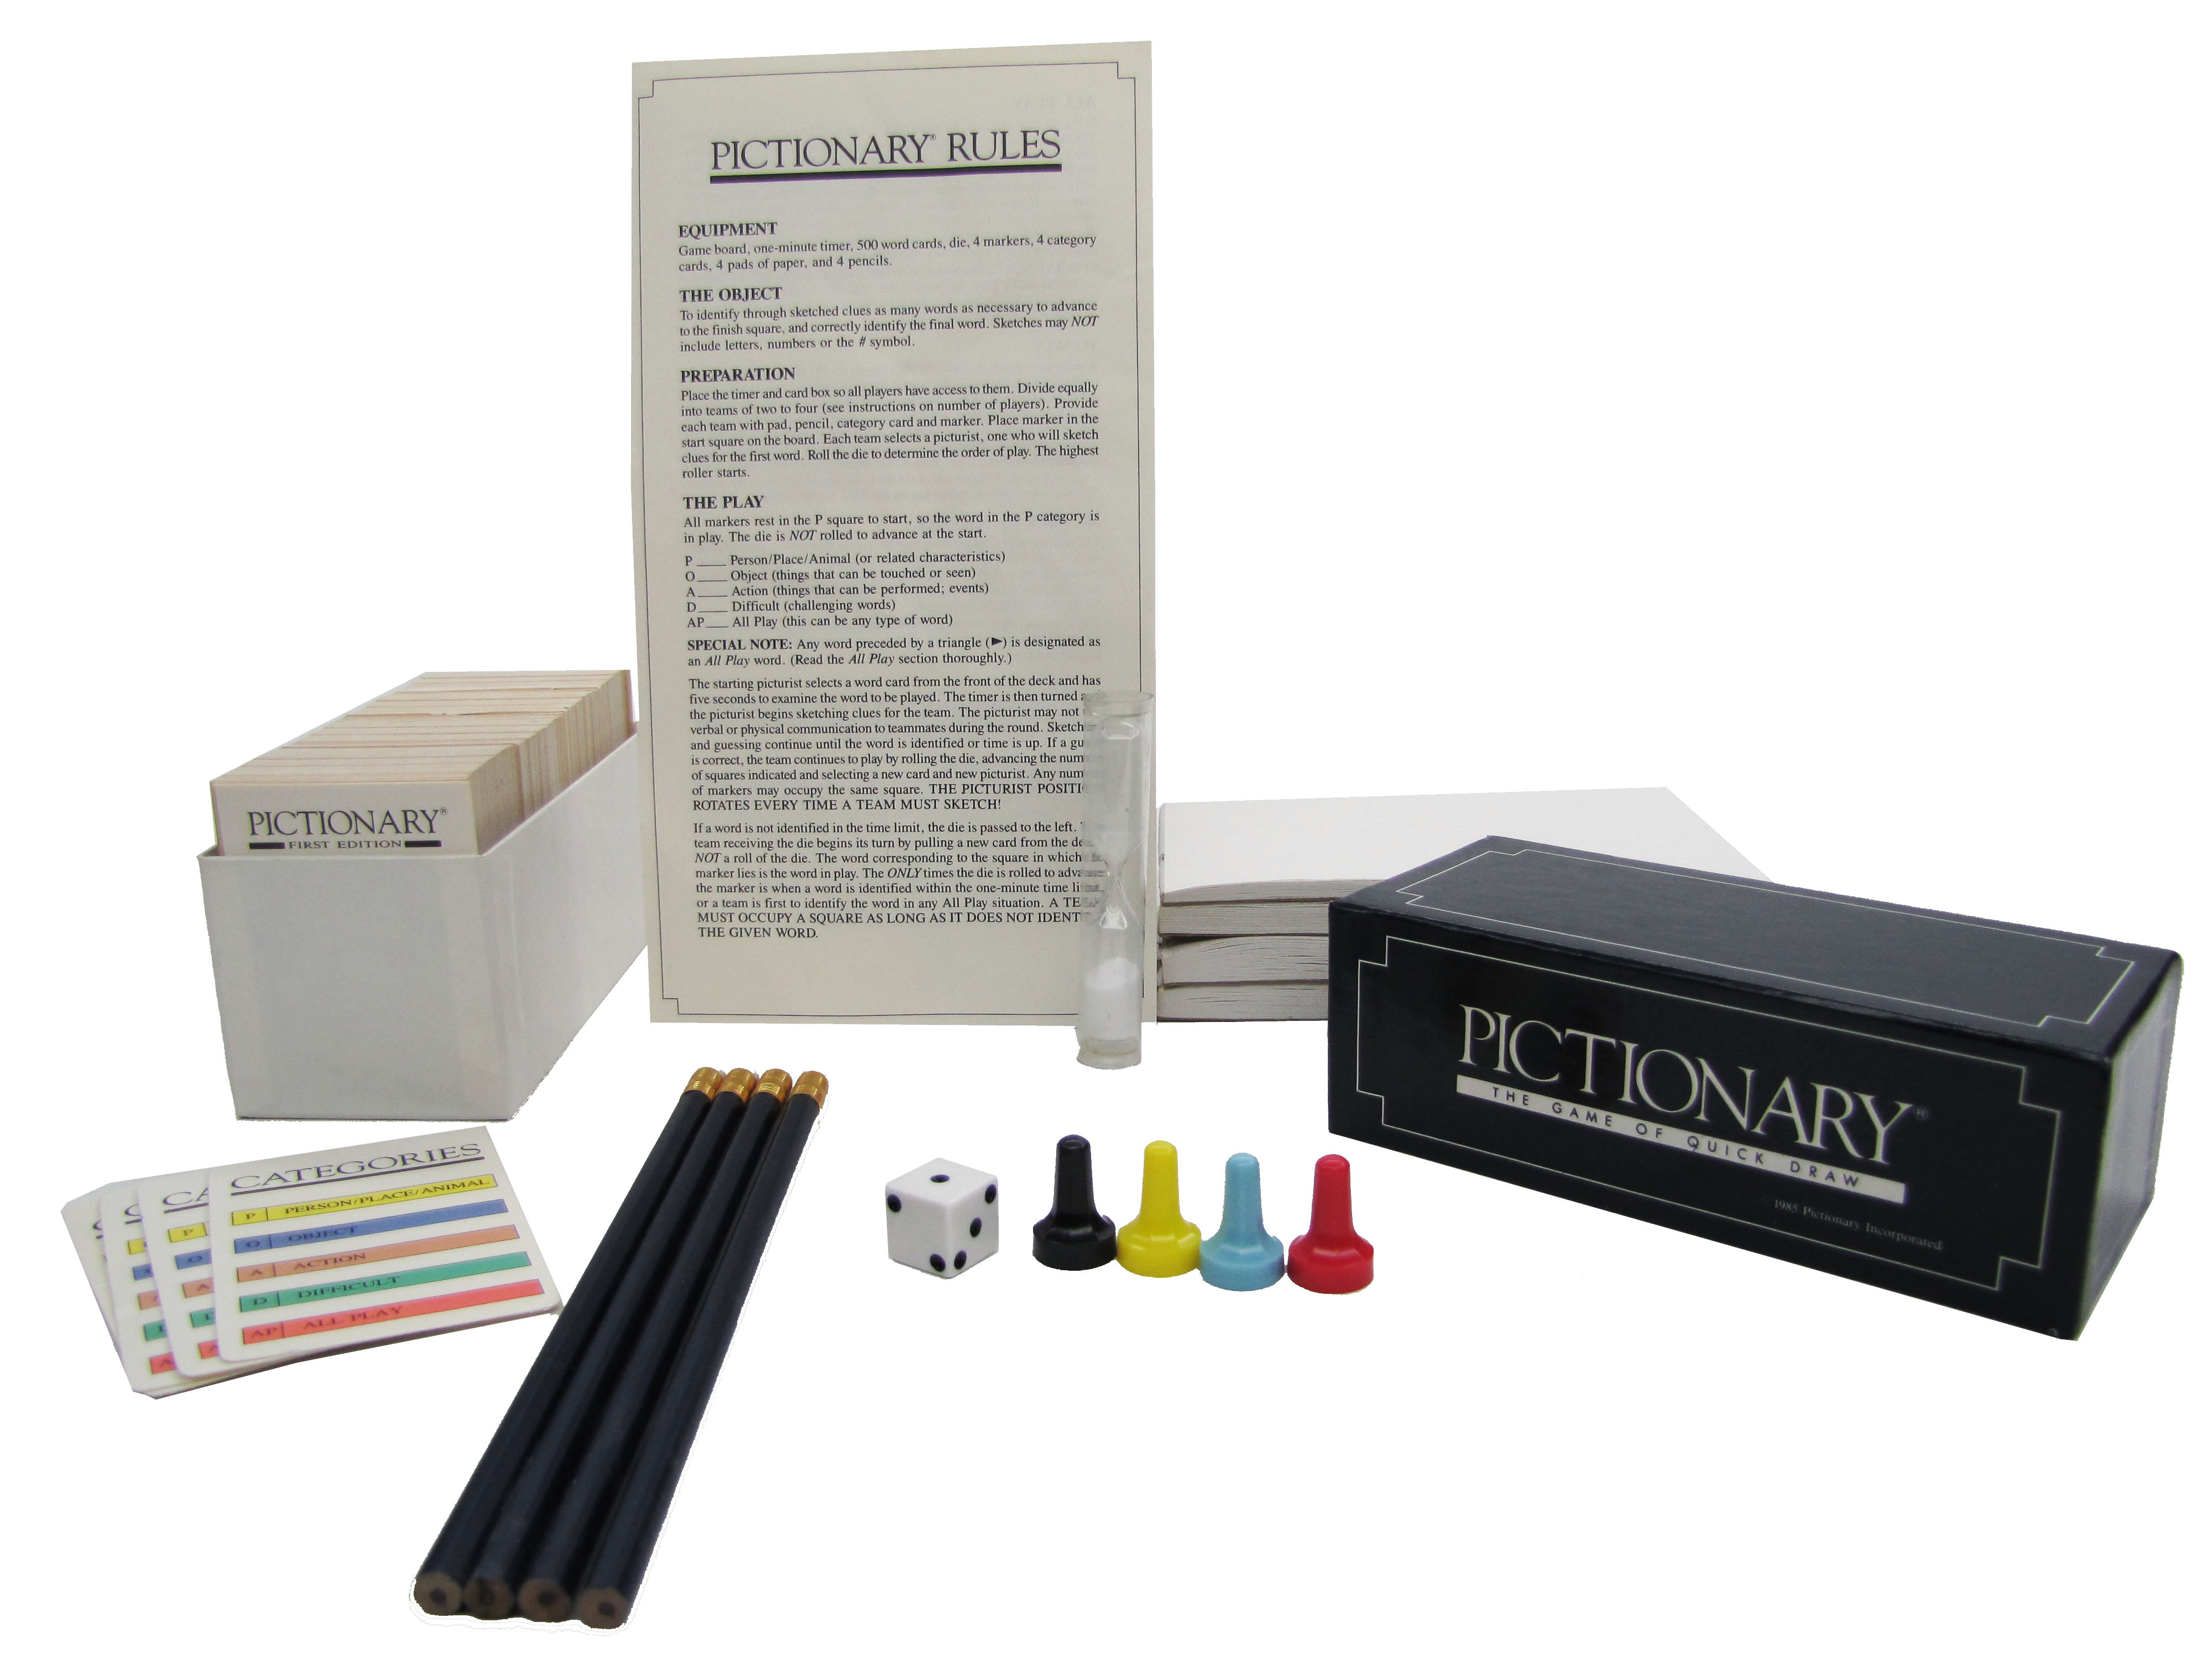 1985 Milton Bradley Pictionary The Game of Quick Draw Complete